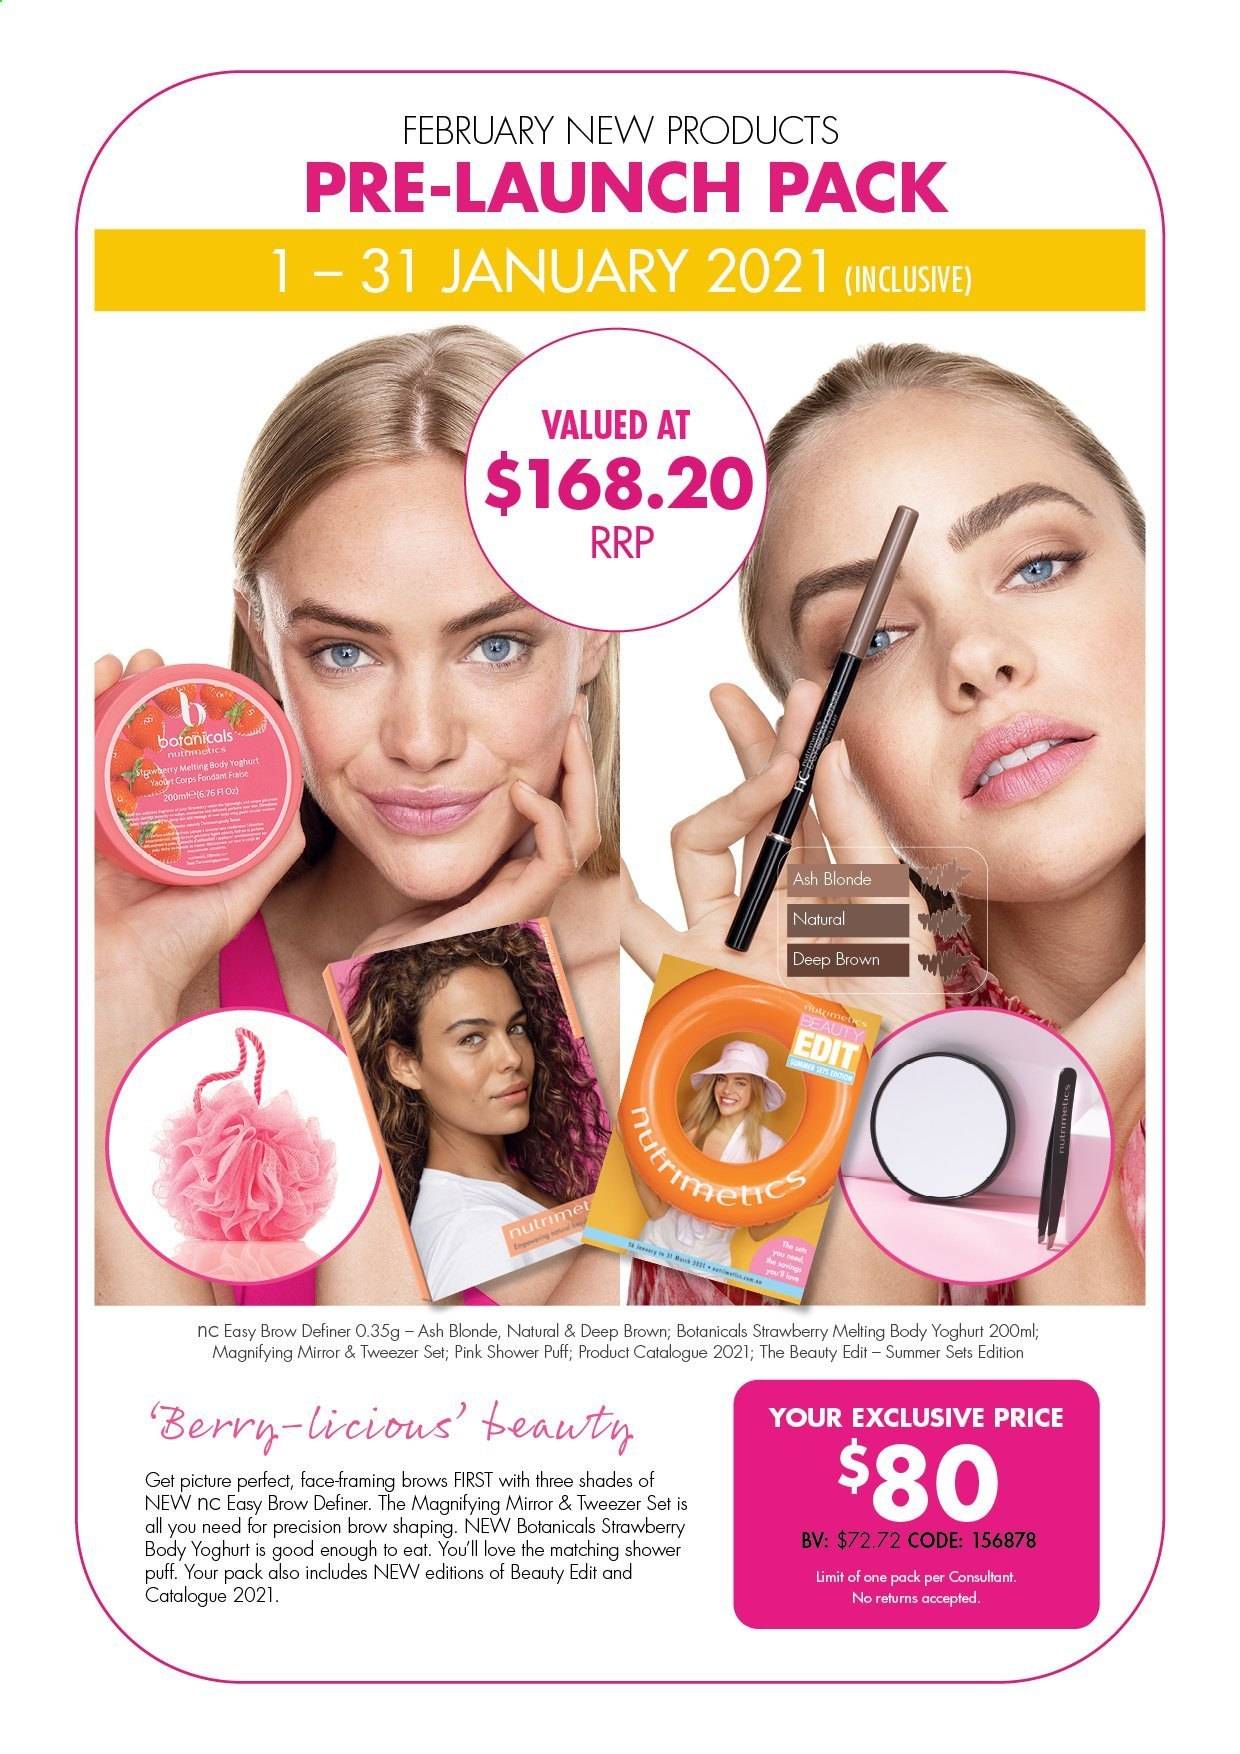 Nutrimetics Catalogue - 1.1.2021 - 31.1.2021 - Sales products - tweezer, shades, yoghurt. Page 1.